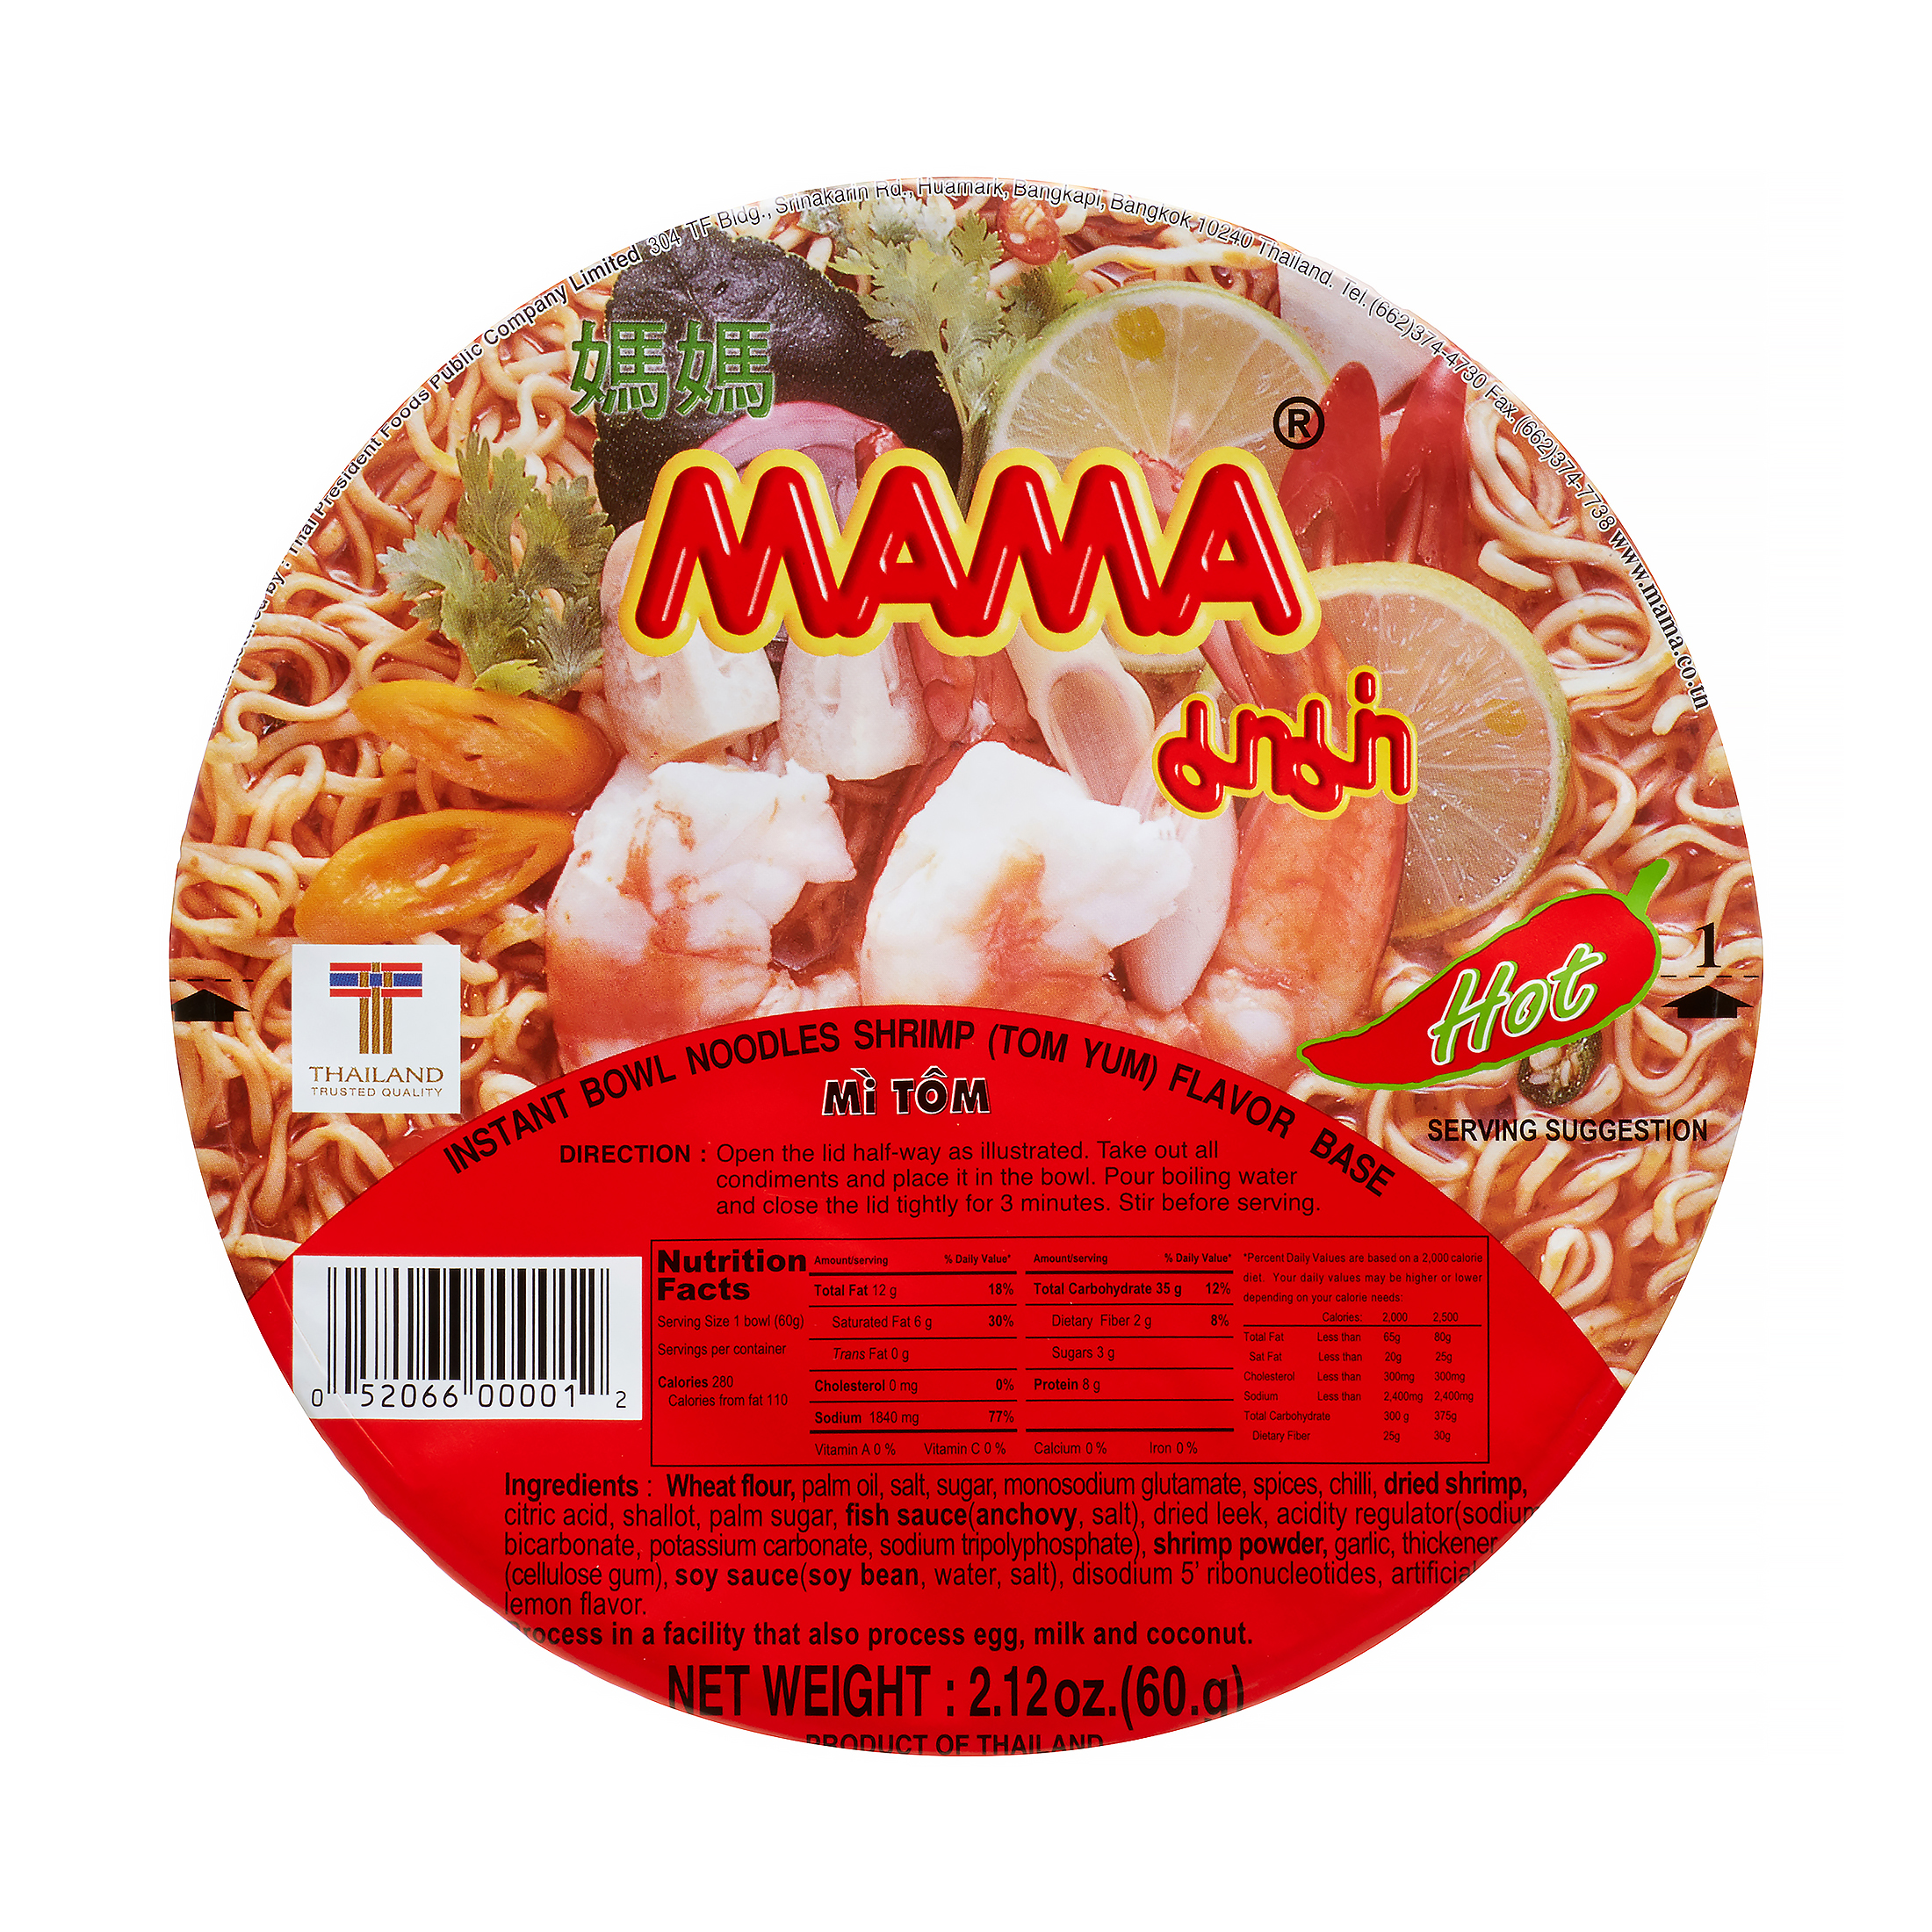 Mama, Bowl Noodle Shrimp, 60g by Mama